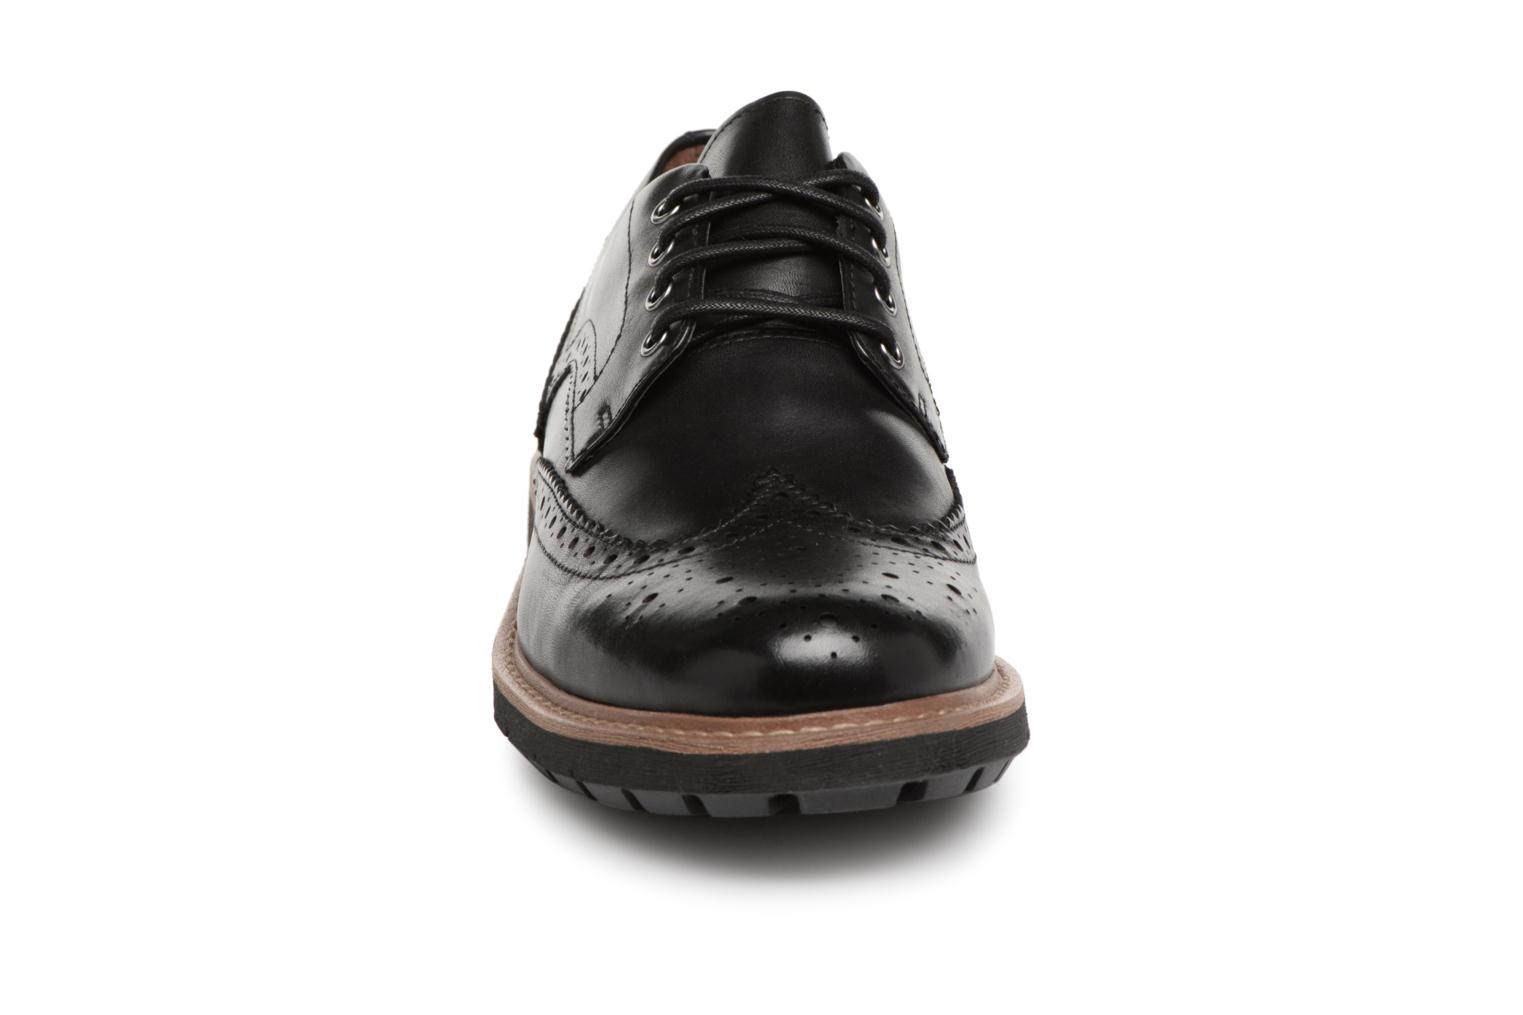 Black Leather Black Clarks Wing Batcombe Clarks Wing Batcombe SGUzMLqVp